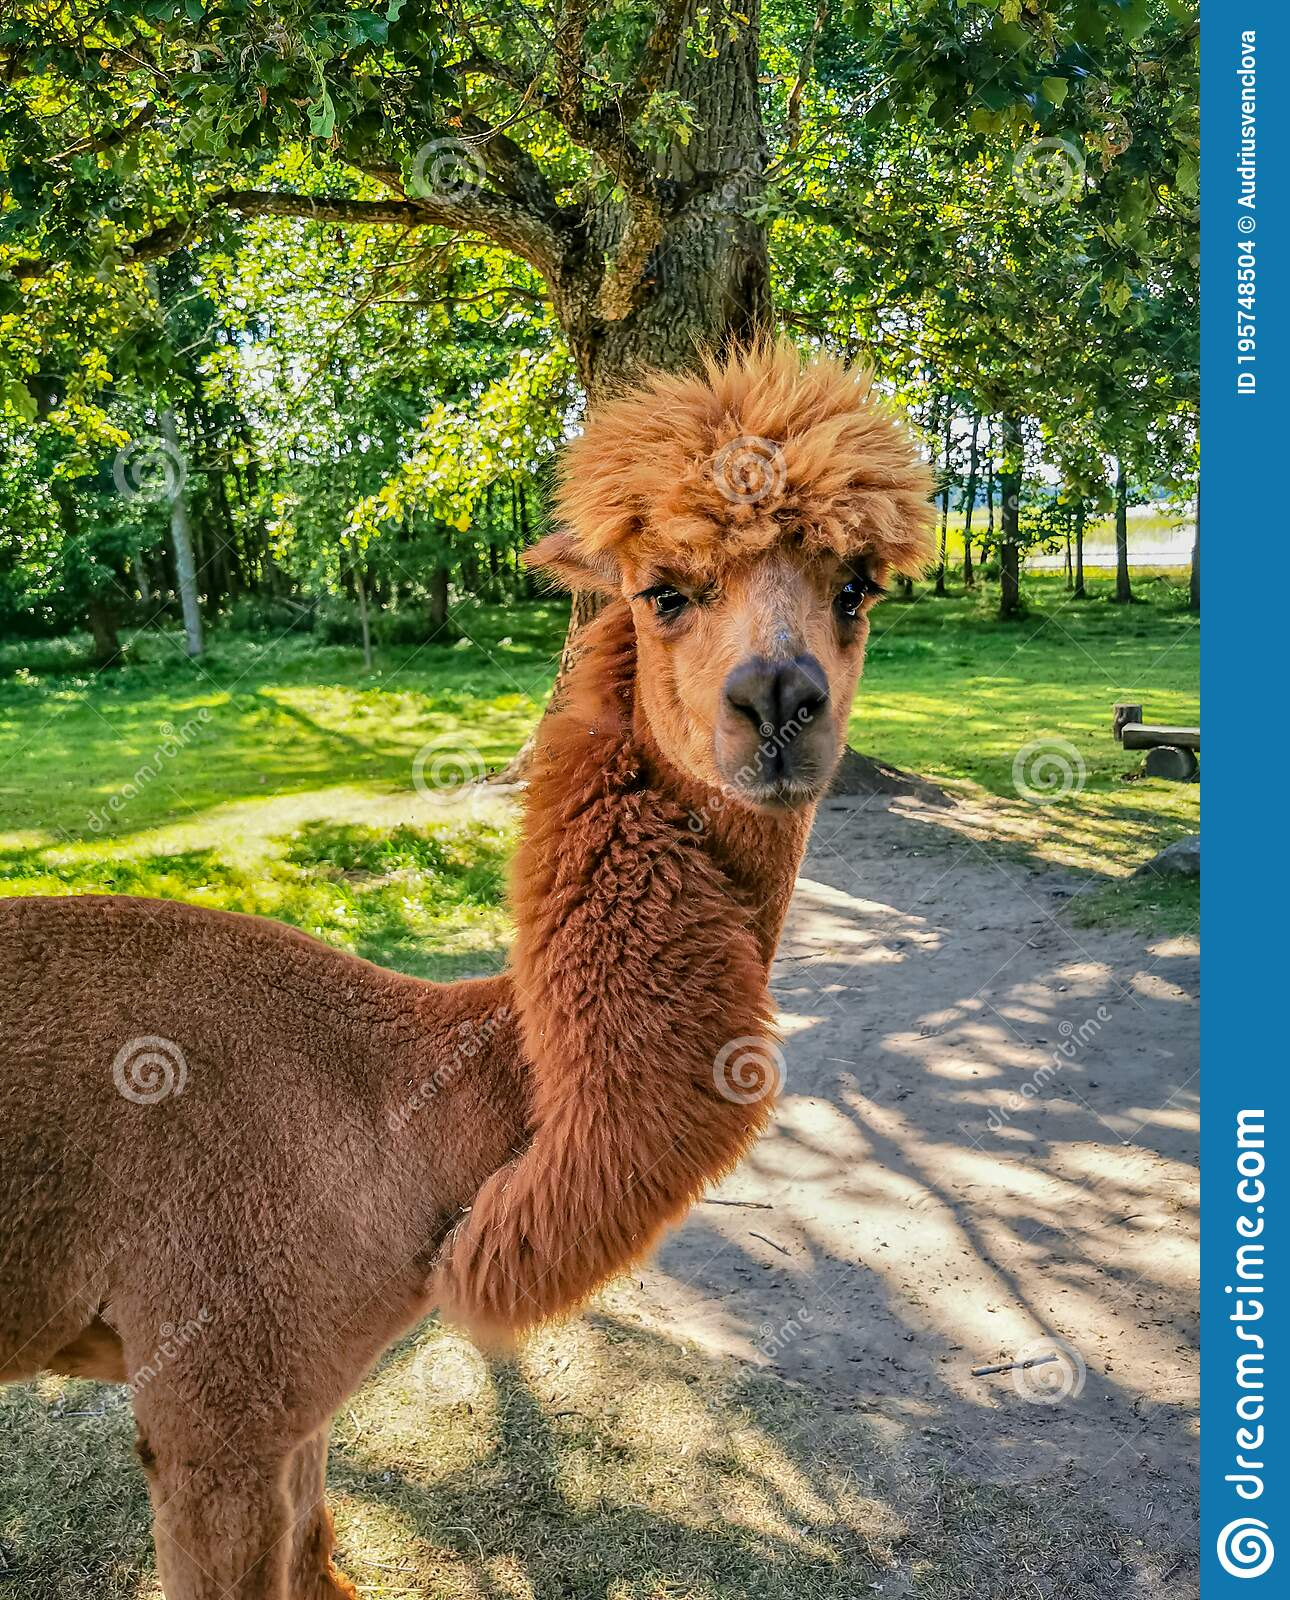 Funny Looking Llama : funny, looking, llama, Alpaca, Funny, Haircut,, Relative, Llama, Looking, Camera, Stock, Photo, Image, Horizontal,, Heart:, 195748504